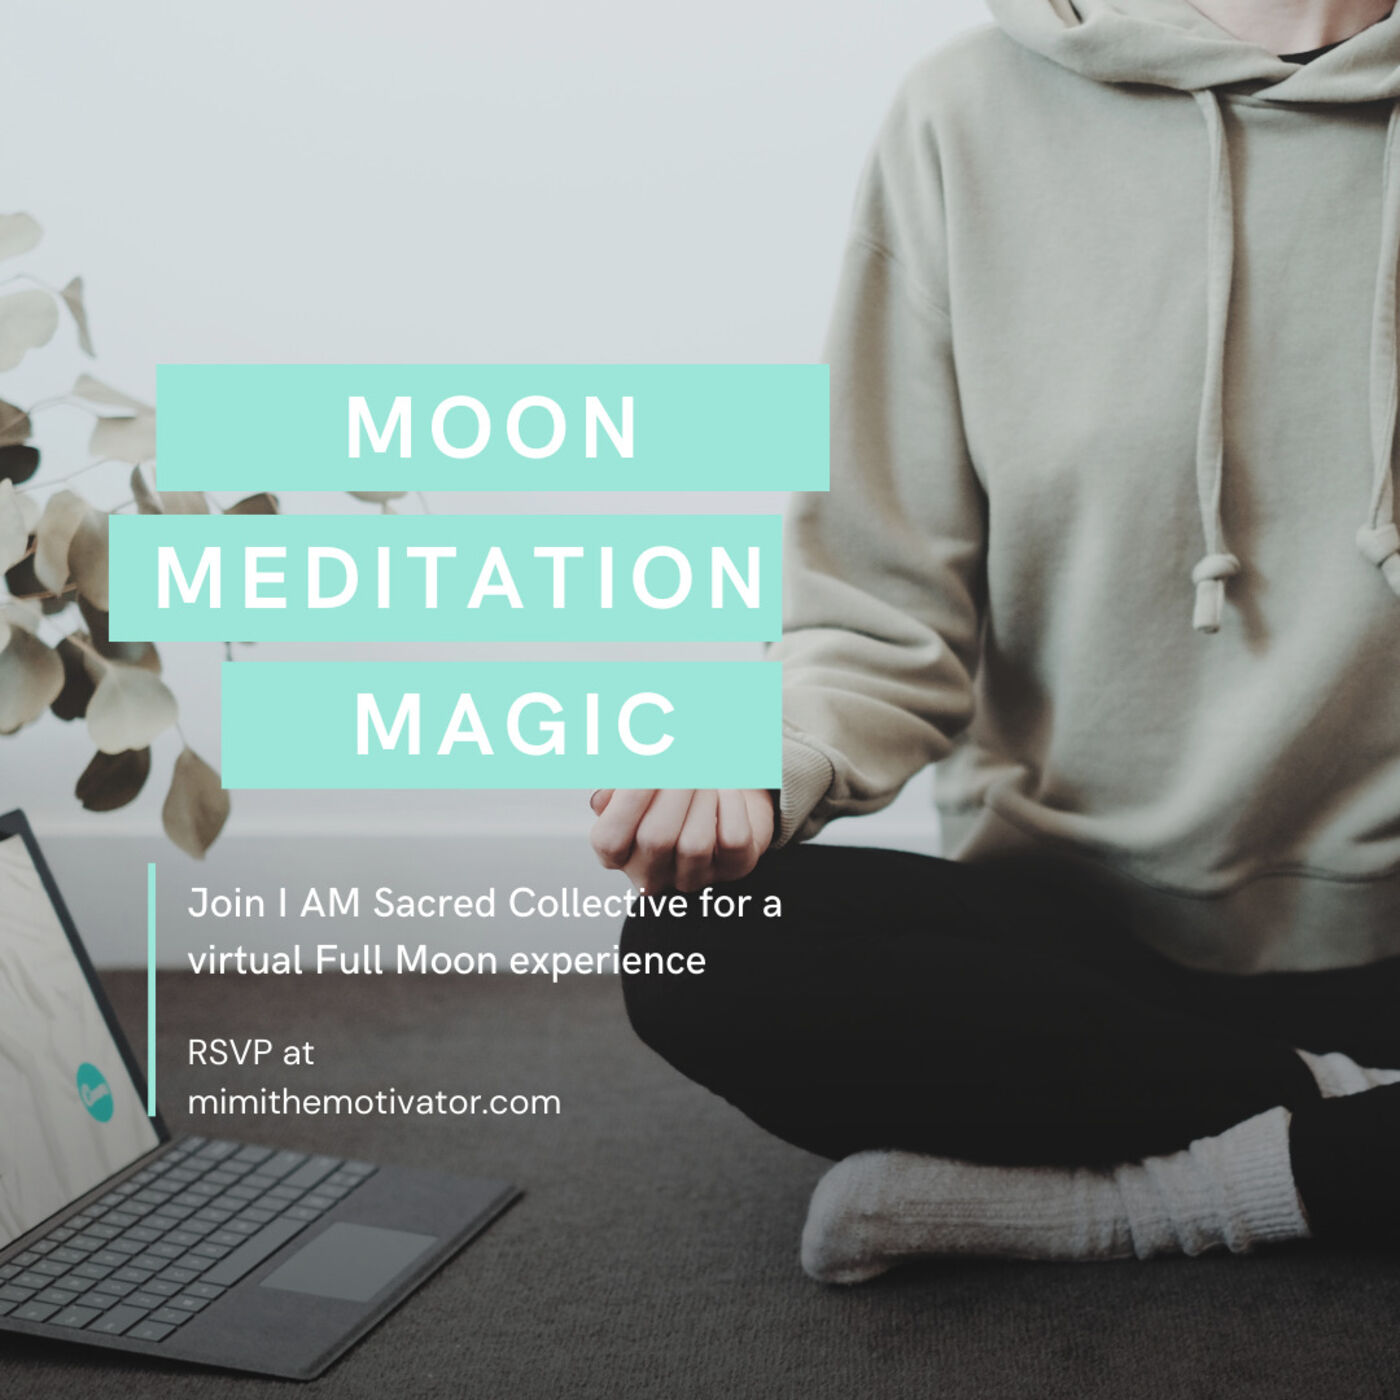 Full Moon in Leo | Moon Meditation Magic w/ I AM Sacred Collective